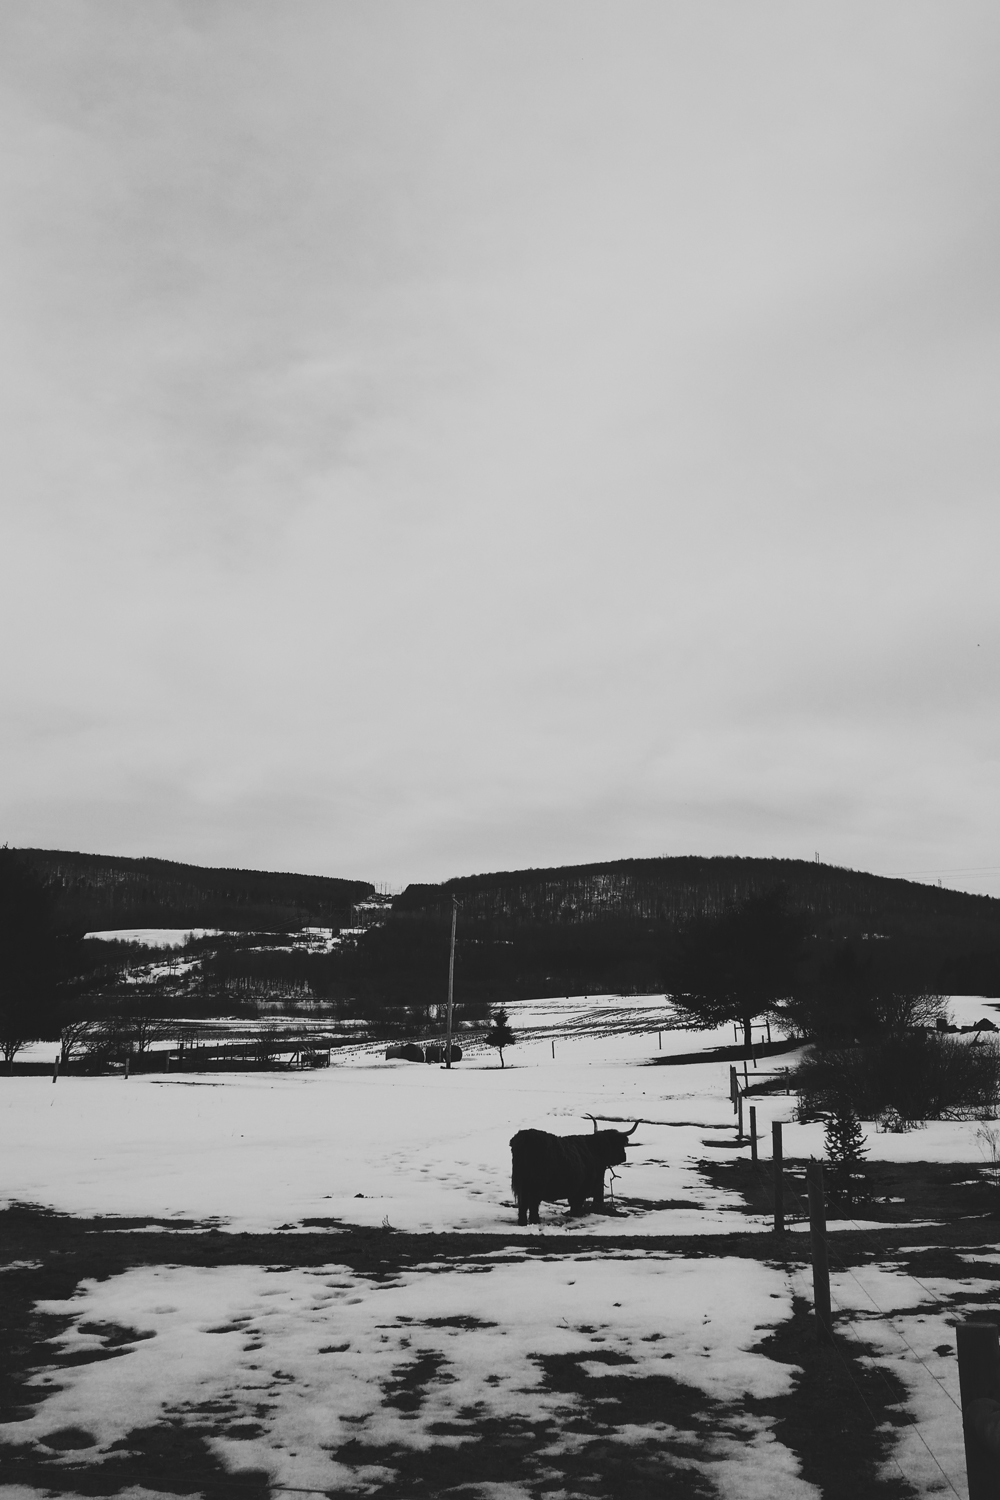 blackandwhite-muskox-phone-photography-syracuse-ny